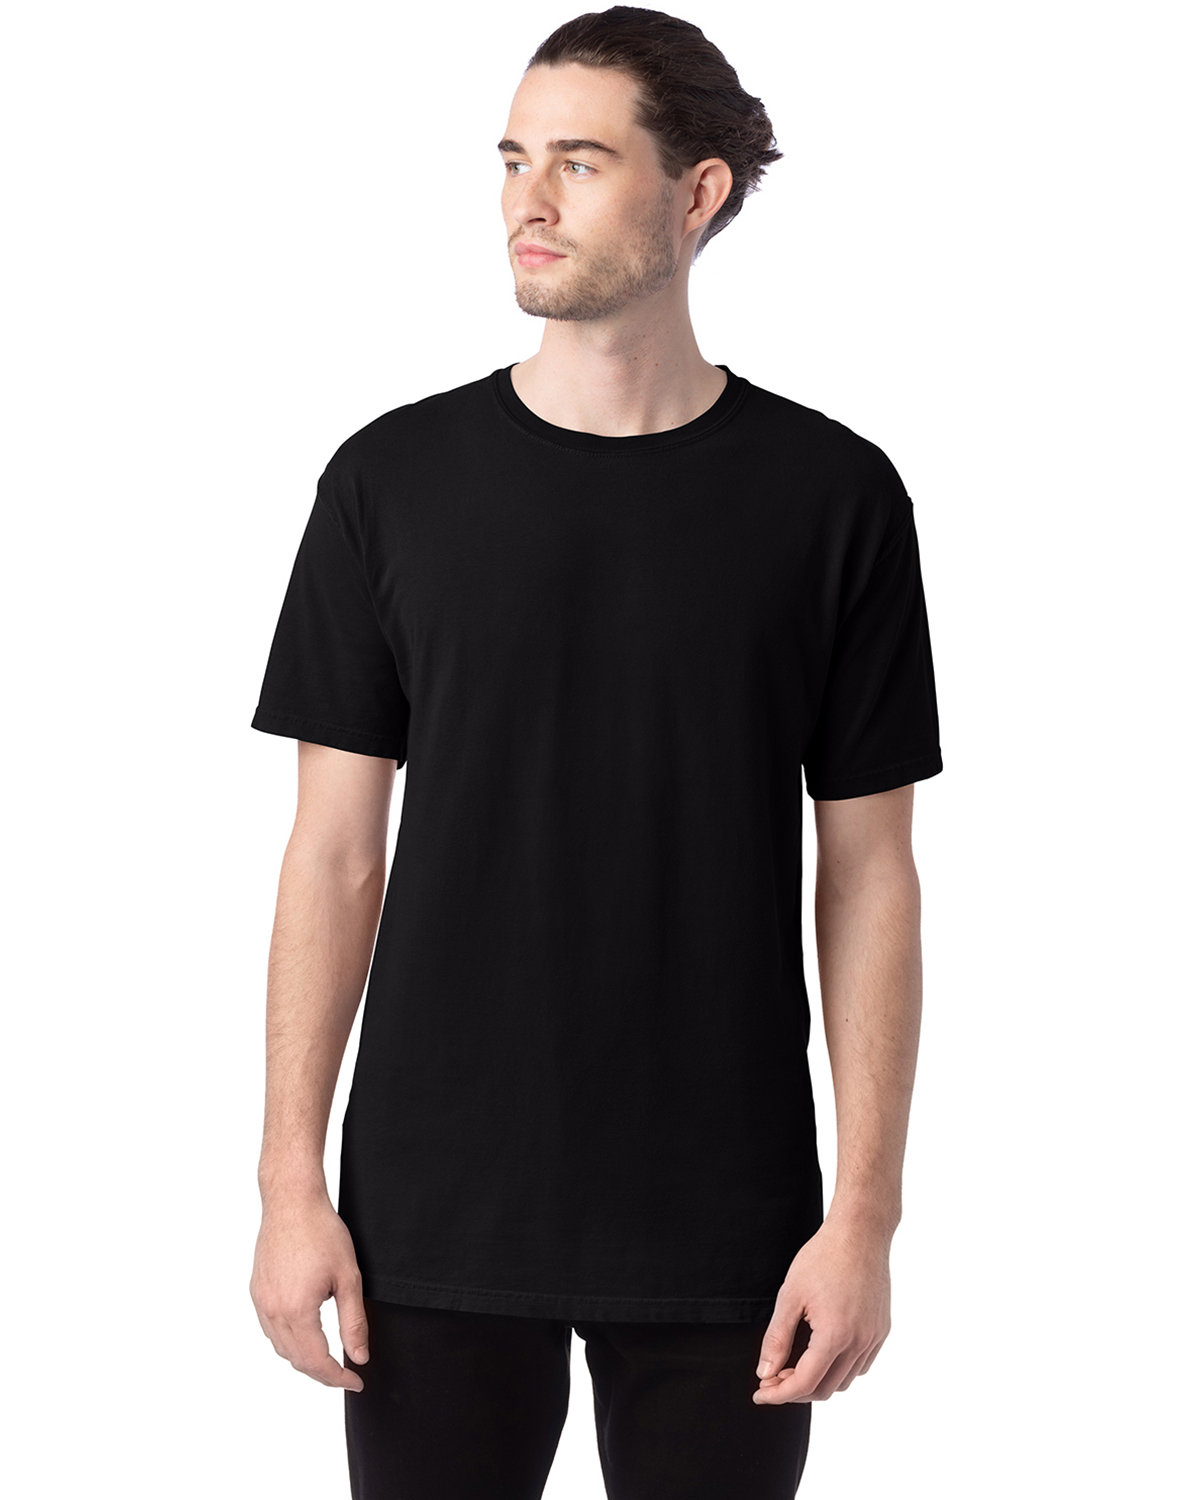 ComfortWash by Hanes Men's 5.5 oz., 100% Ringspun Cotton Garment-Dyed T-Shirt BLACK